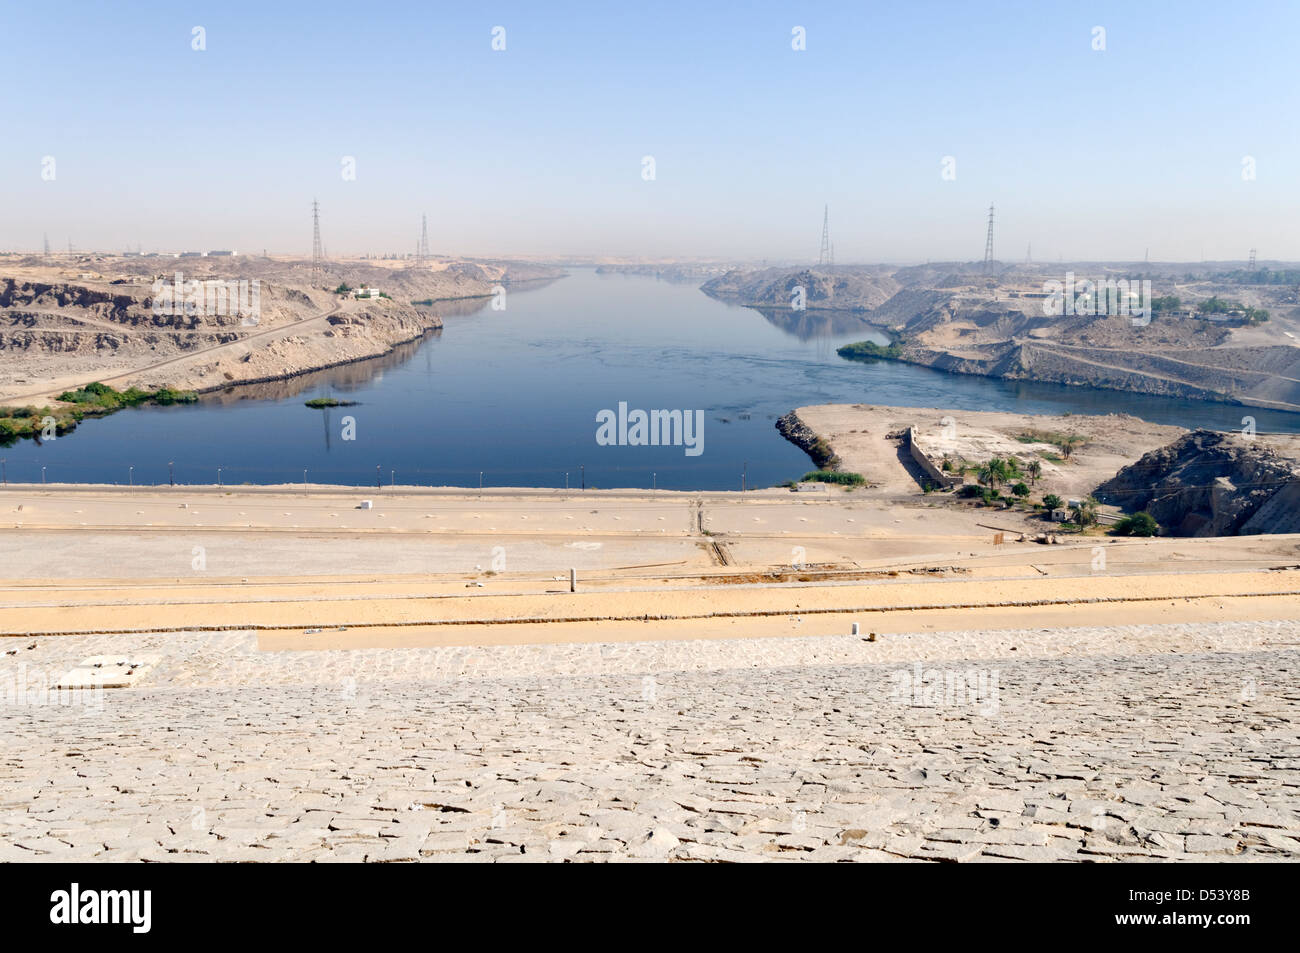 Egypt The Aswan High Dam Captures The Worlds Longest River The - What is the third largest river in the world